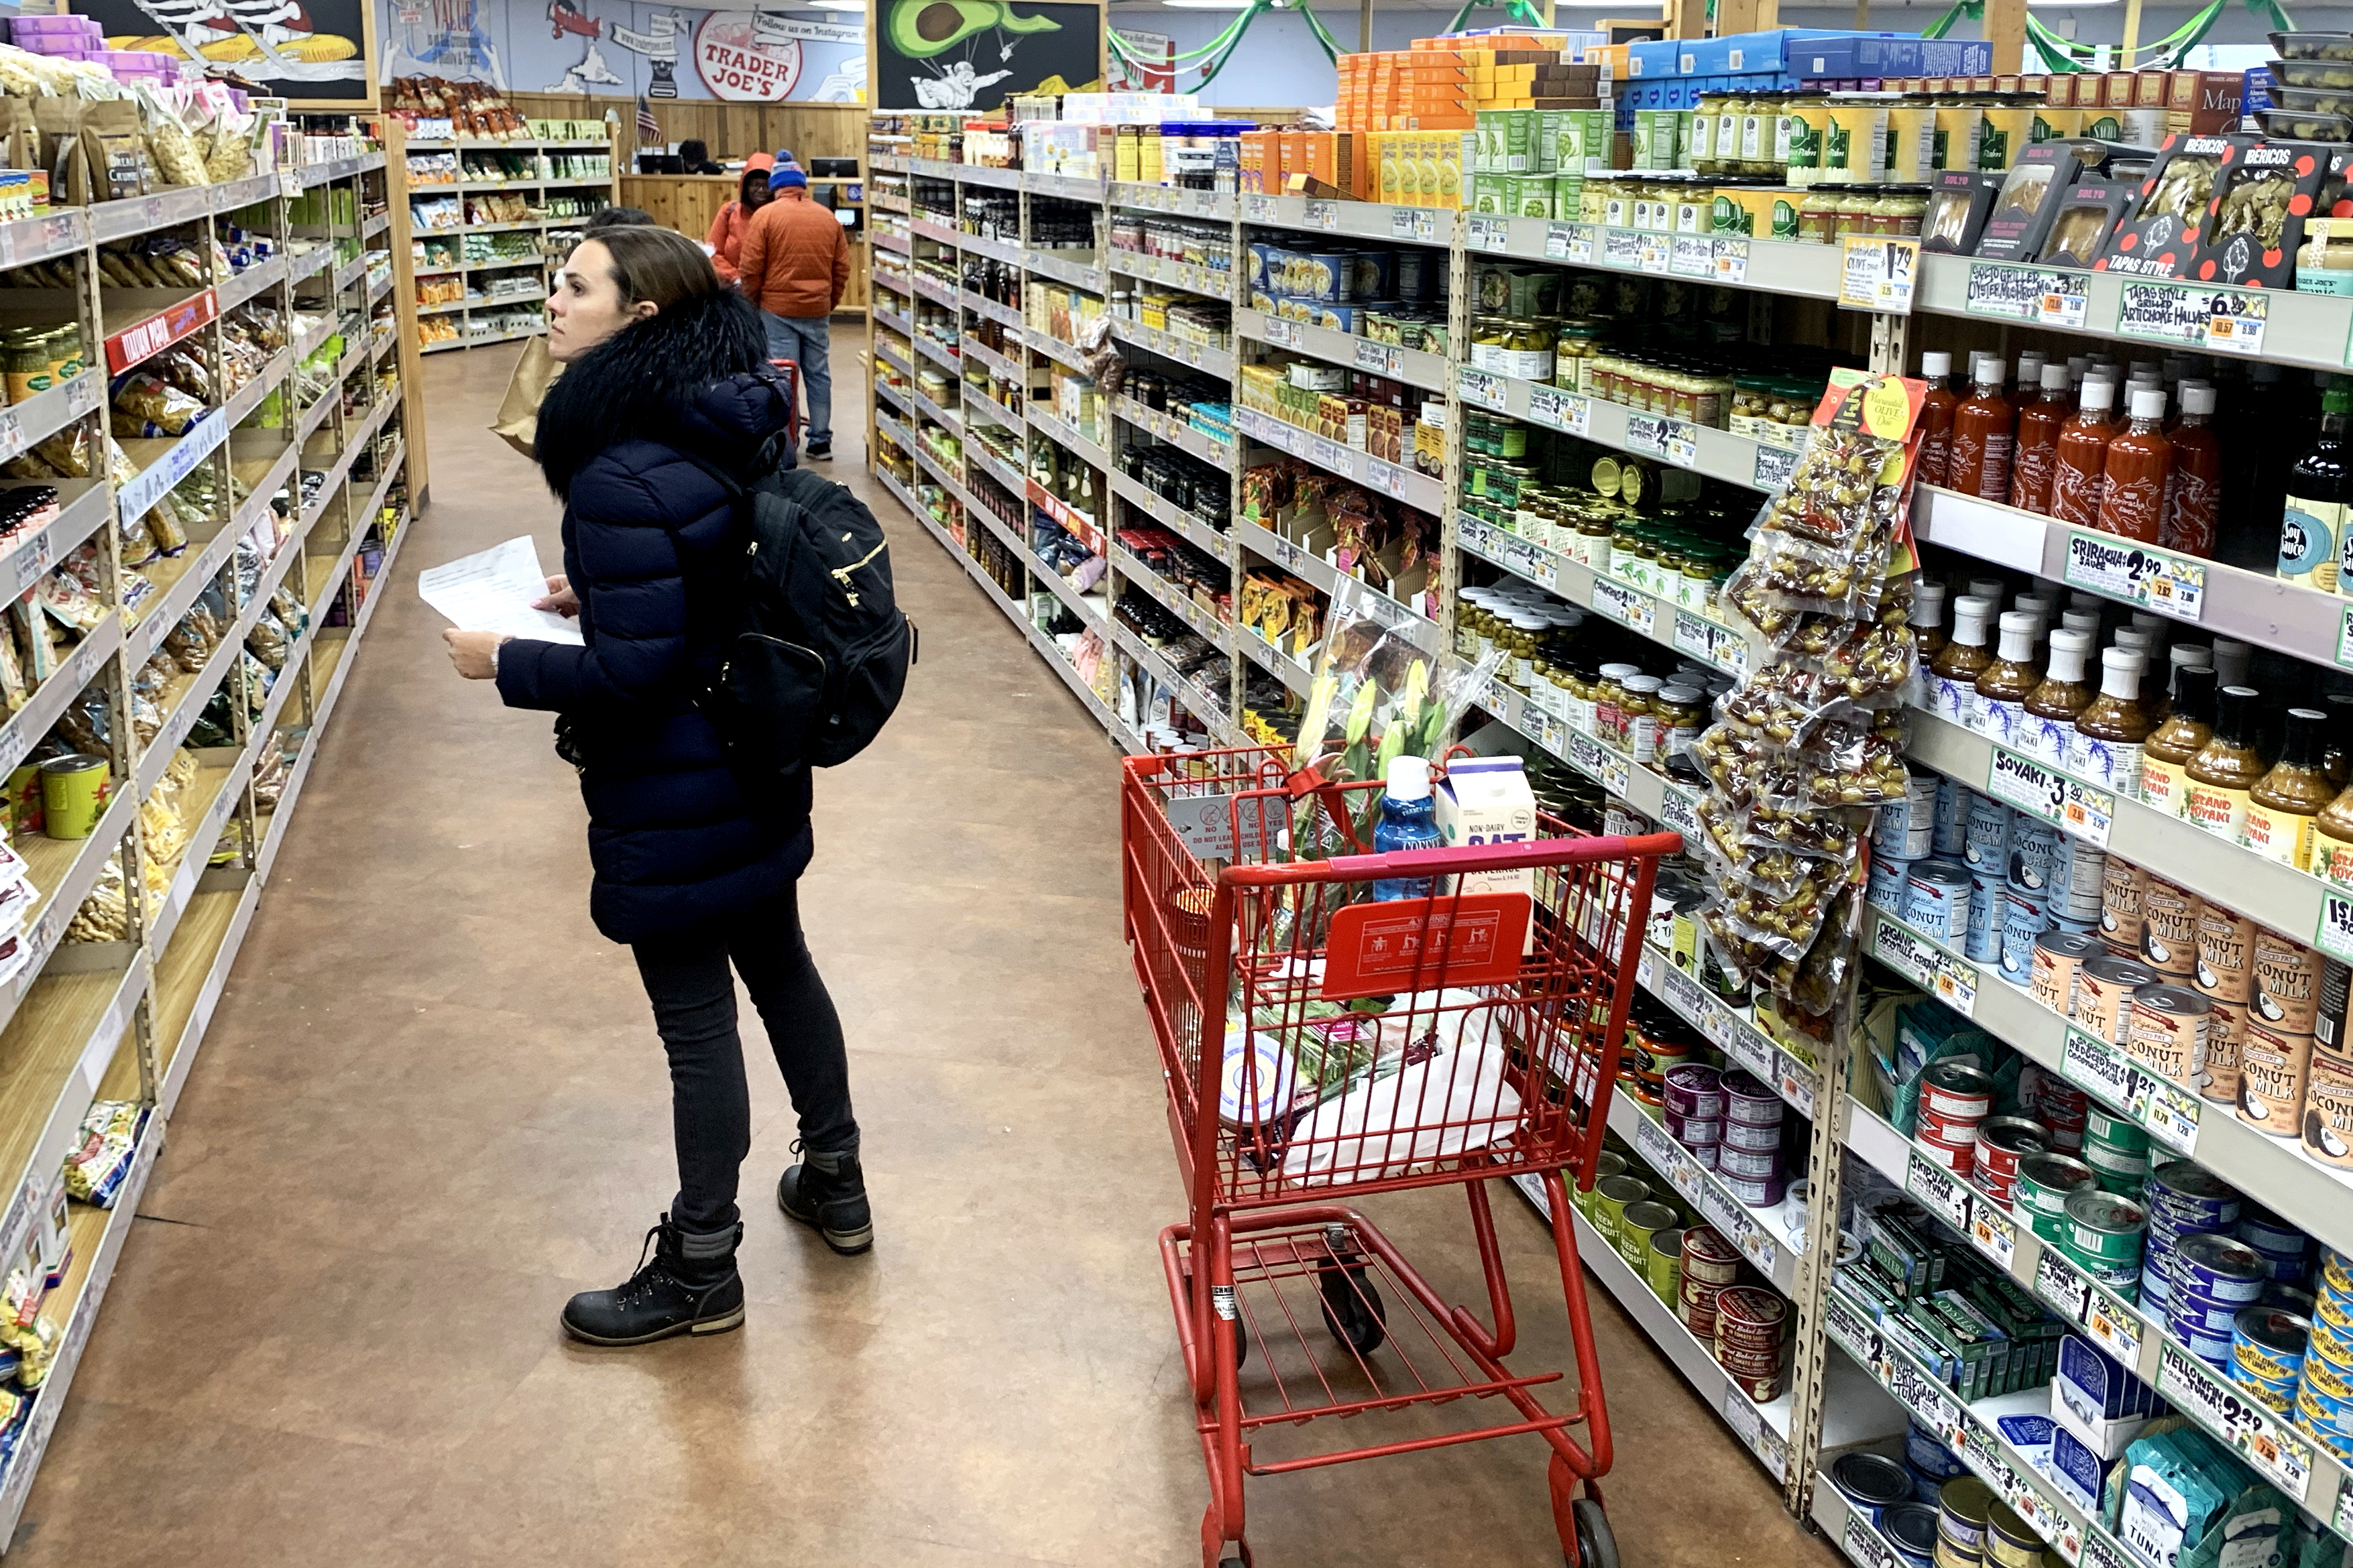 CAMBRIDGE, MASSACHUSETTS - MARCH 23: A woman shops at Trader Joe's at on March 23, 2020 in Cambridge, Massachusetts. The store has begun limiting the capacity of shoppers allowed inside, and offering sanitizing wipes upon entry. (Photo by Maddie Meyer/Getty Images)